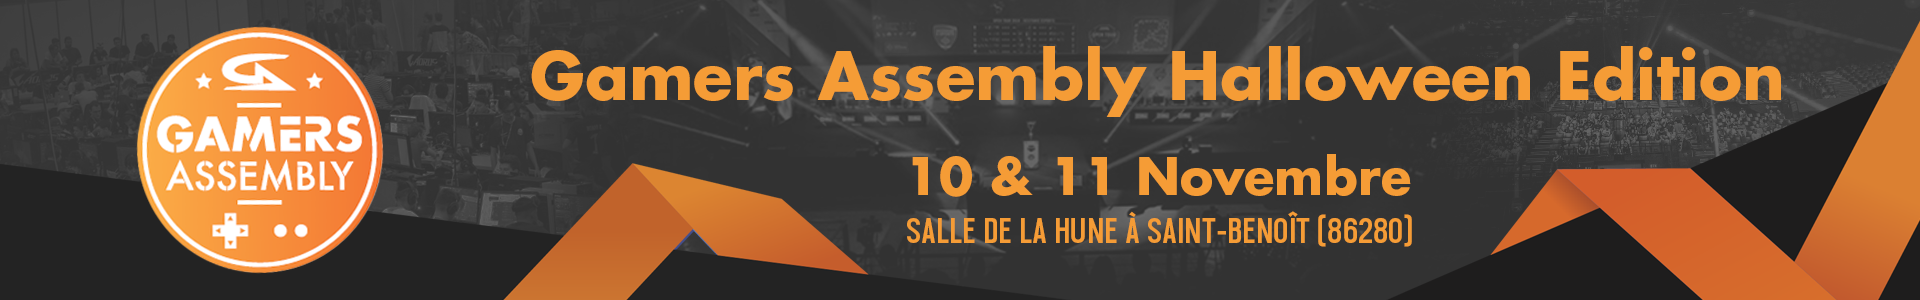 Image de présentation de Gamers Assembly : Halloween Edition 2018